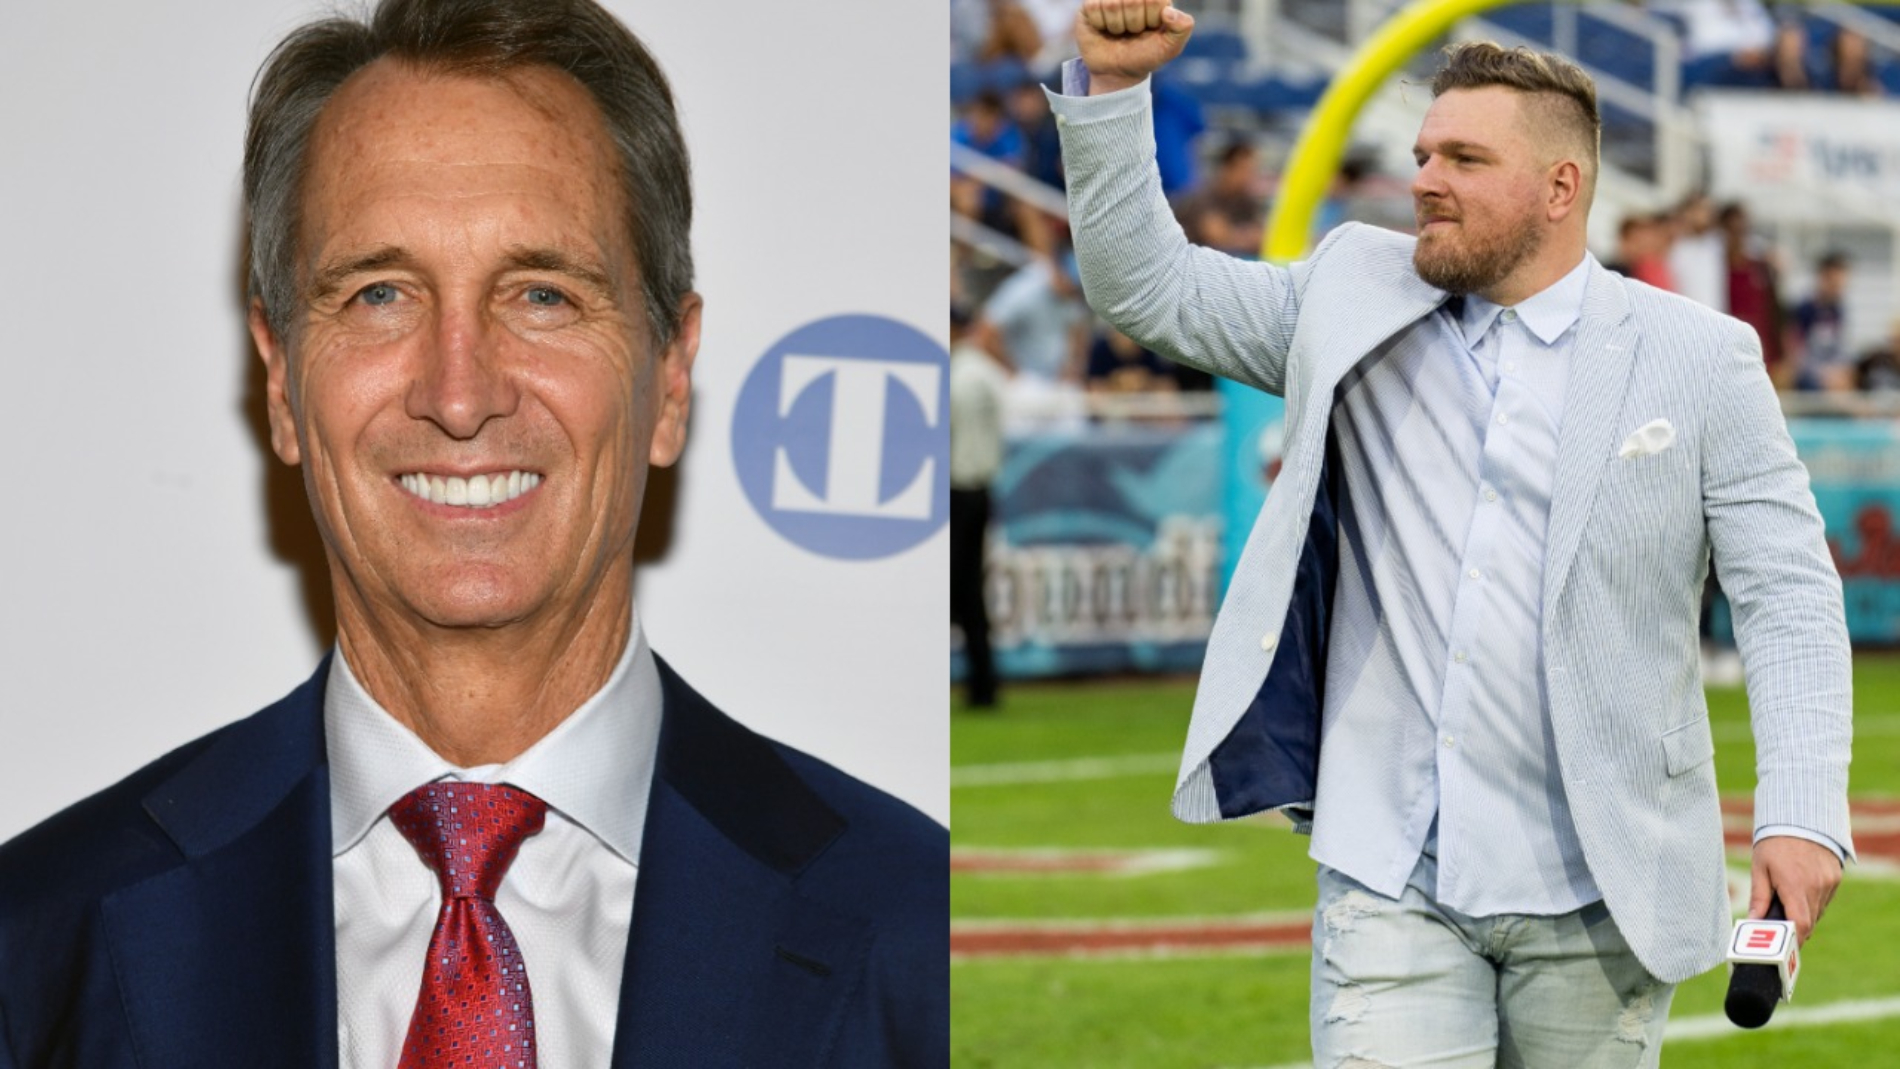 NBC's Cris Collinsworth made some comments during a recent game that were pretty polarizing. They ultimately got Pat McAfee fired up, too.